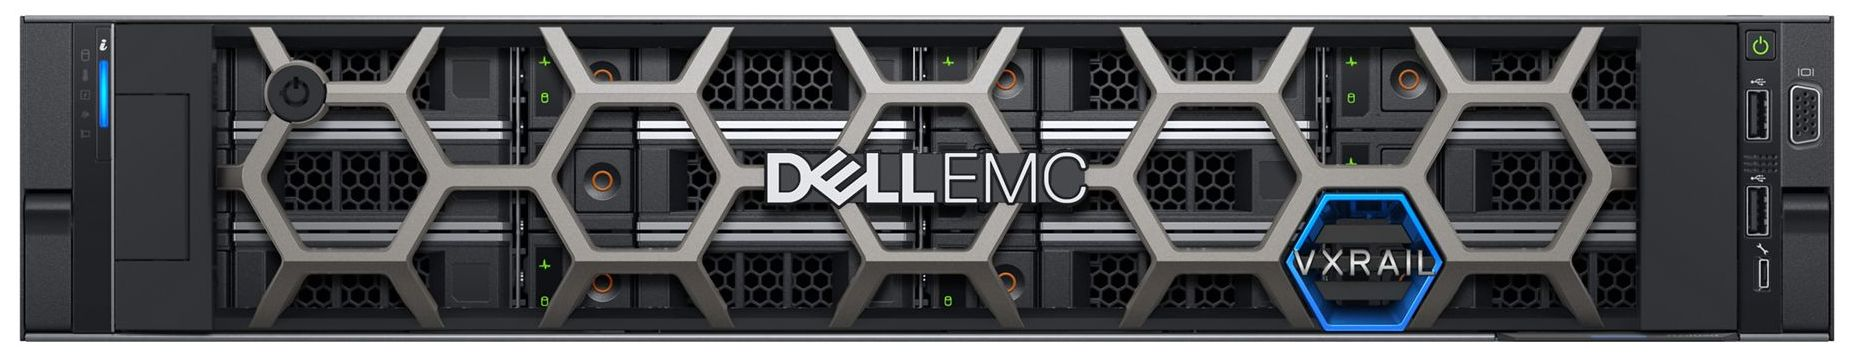 Dell EMC VxRail S-Series Front